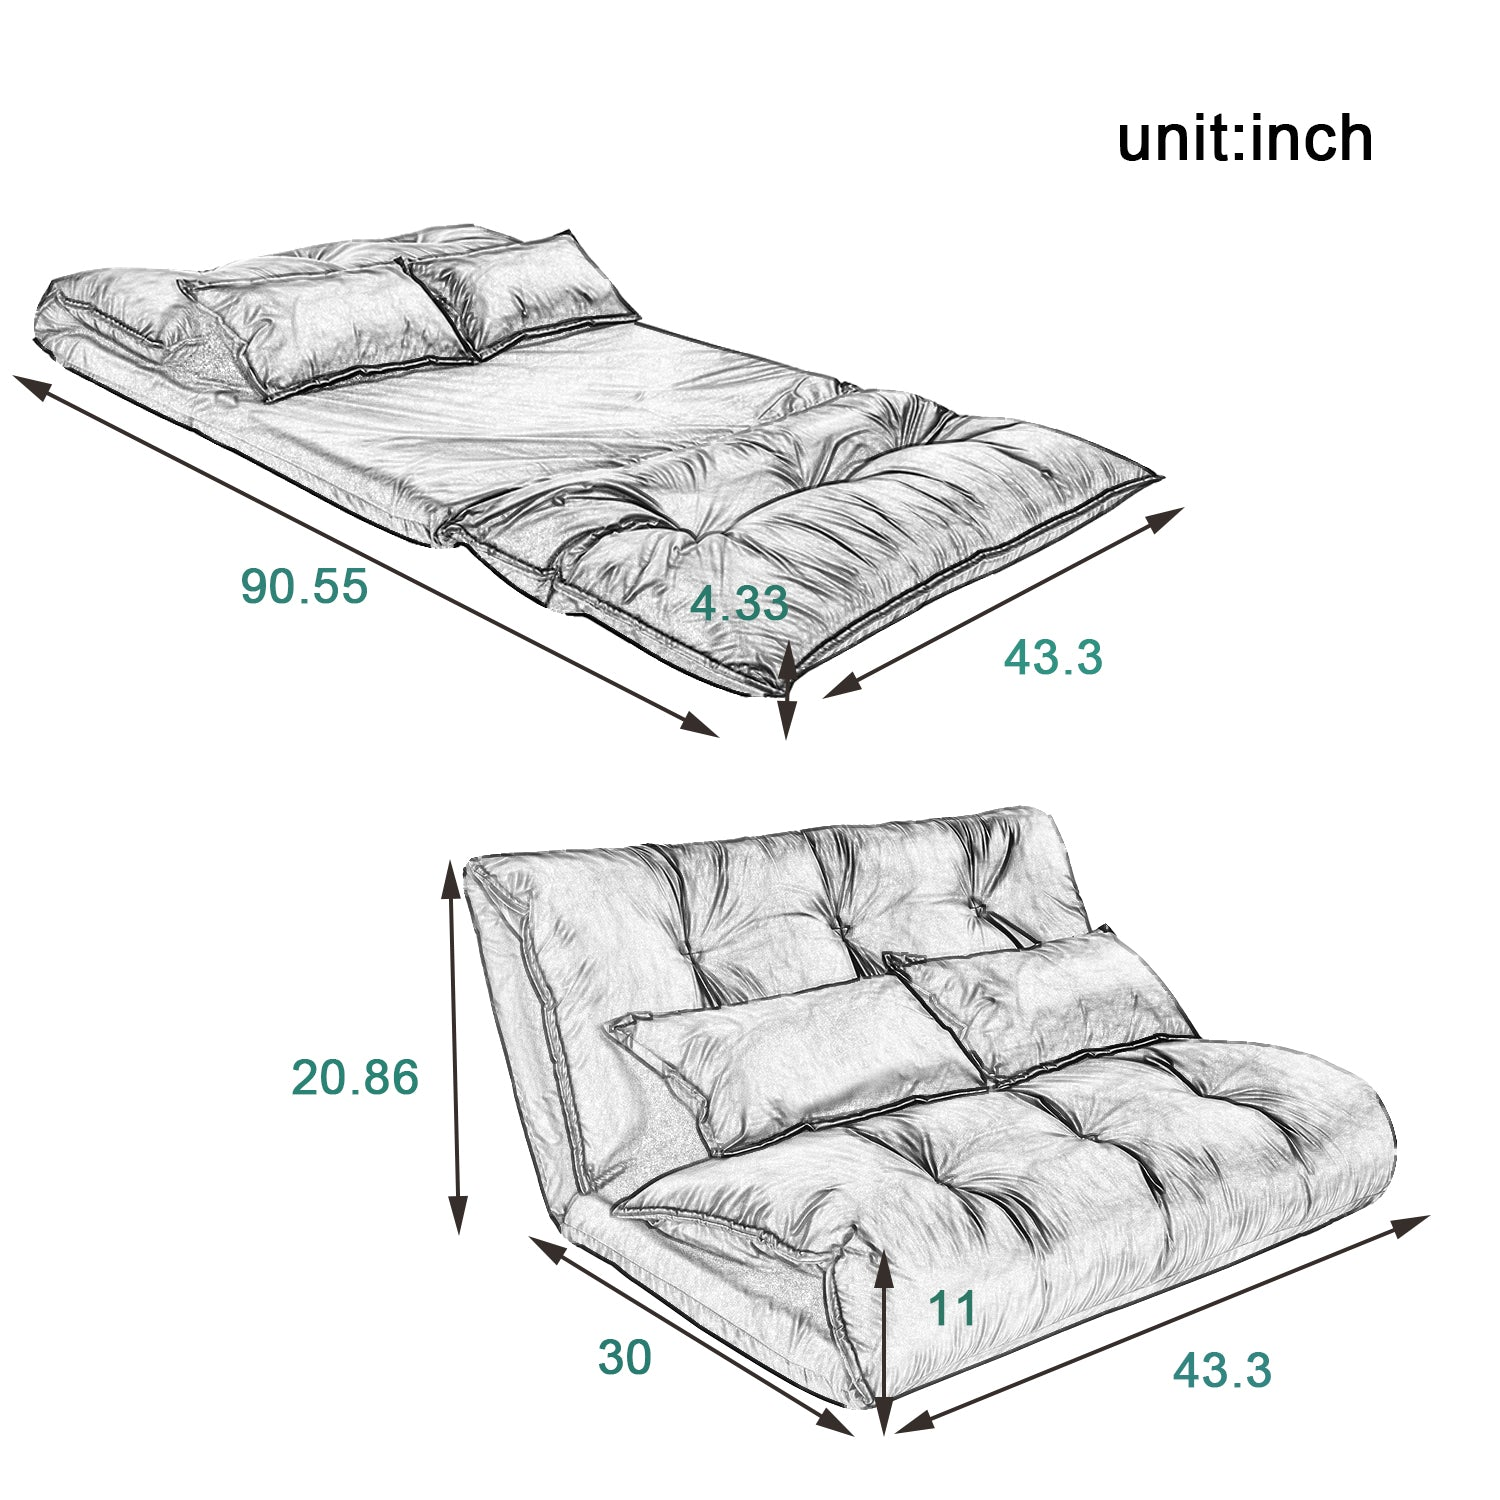 Lavender Floor Chair Adjustable Sofa Bed Lounge Floor Mattress Lazy Man Couch with Two Pillows BH194102 BH008064